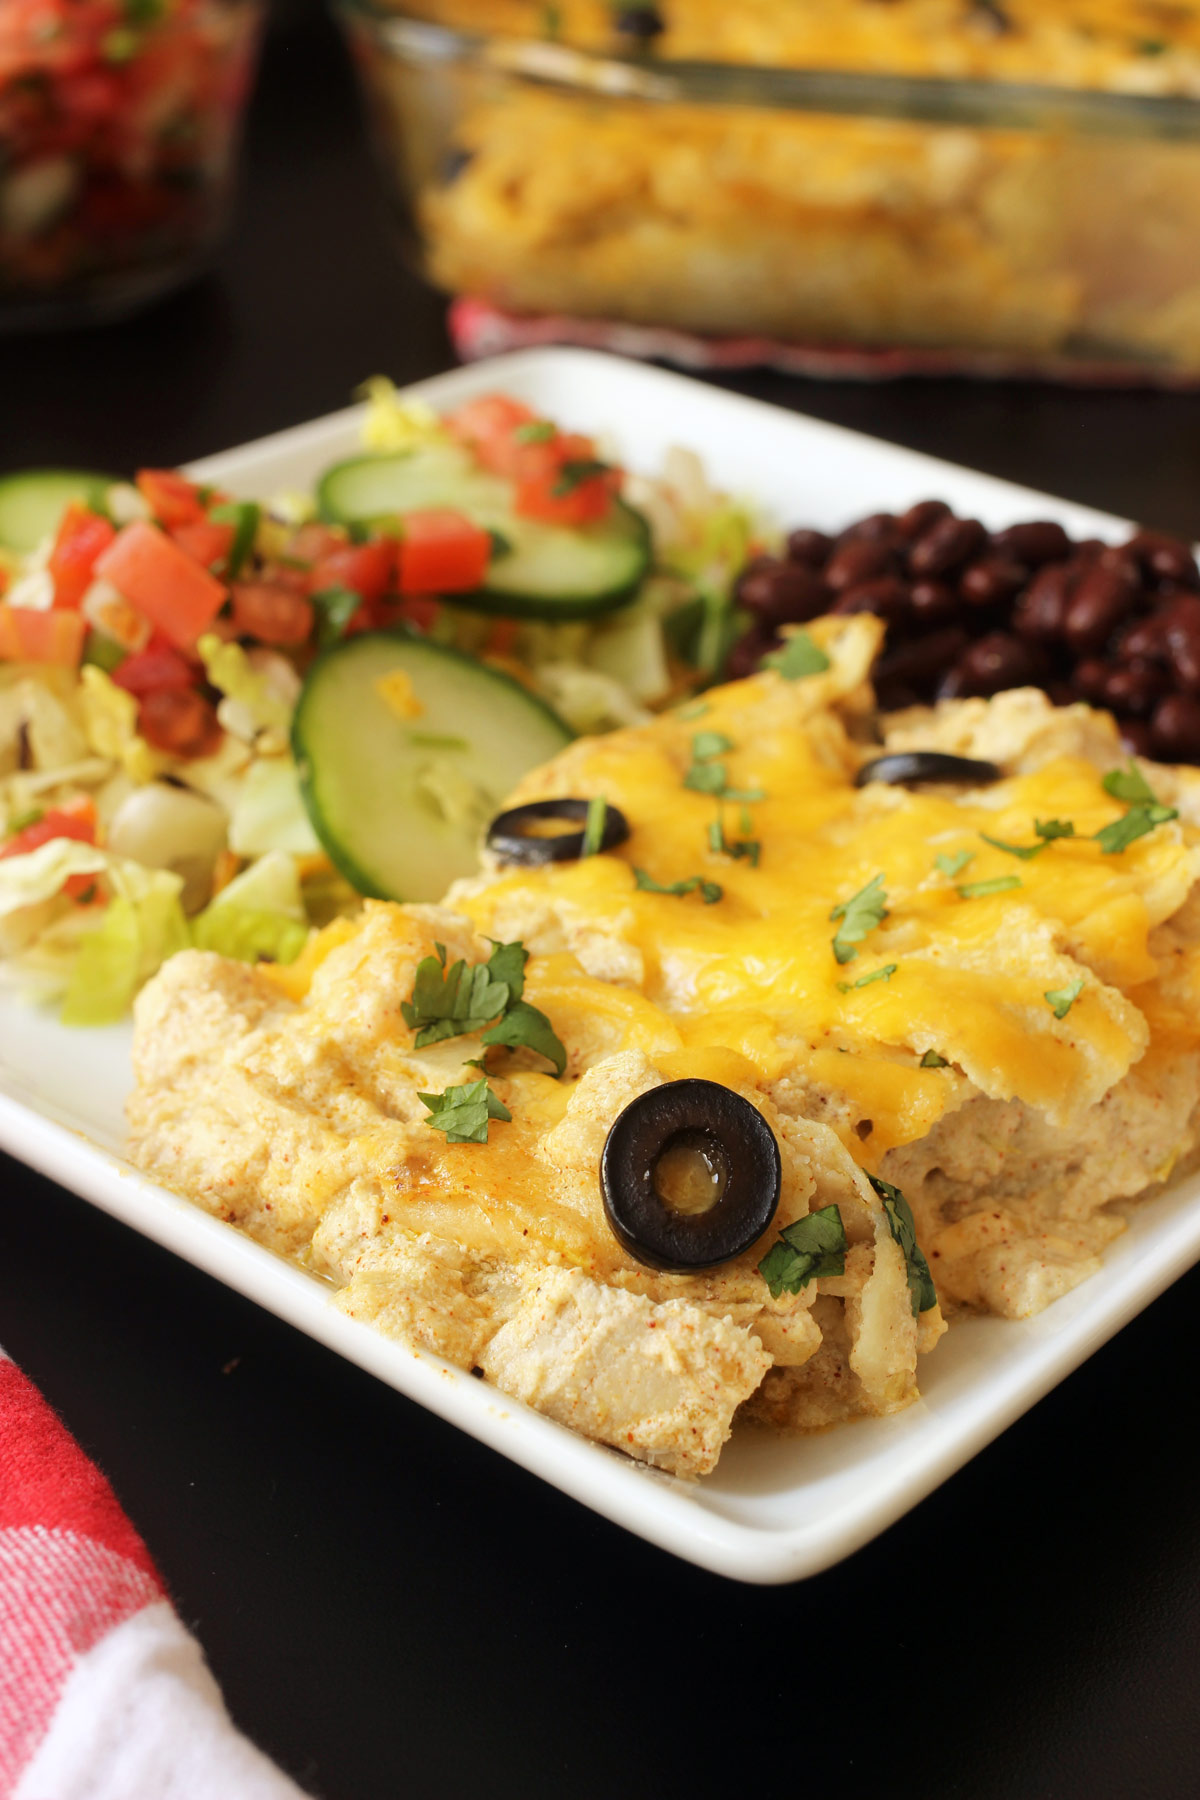 plate of enchilada bake with salad and beans